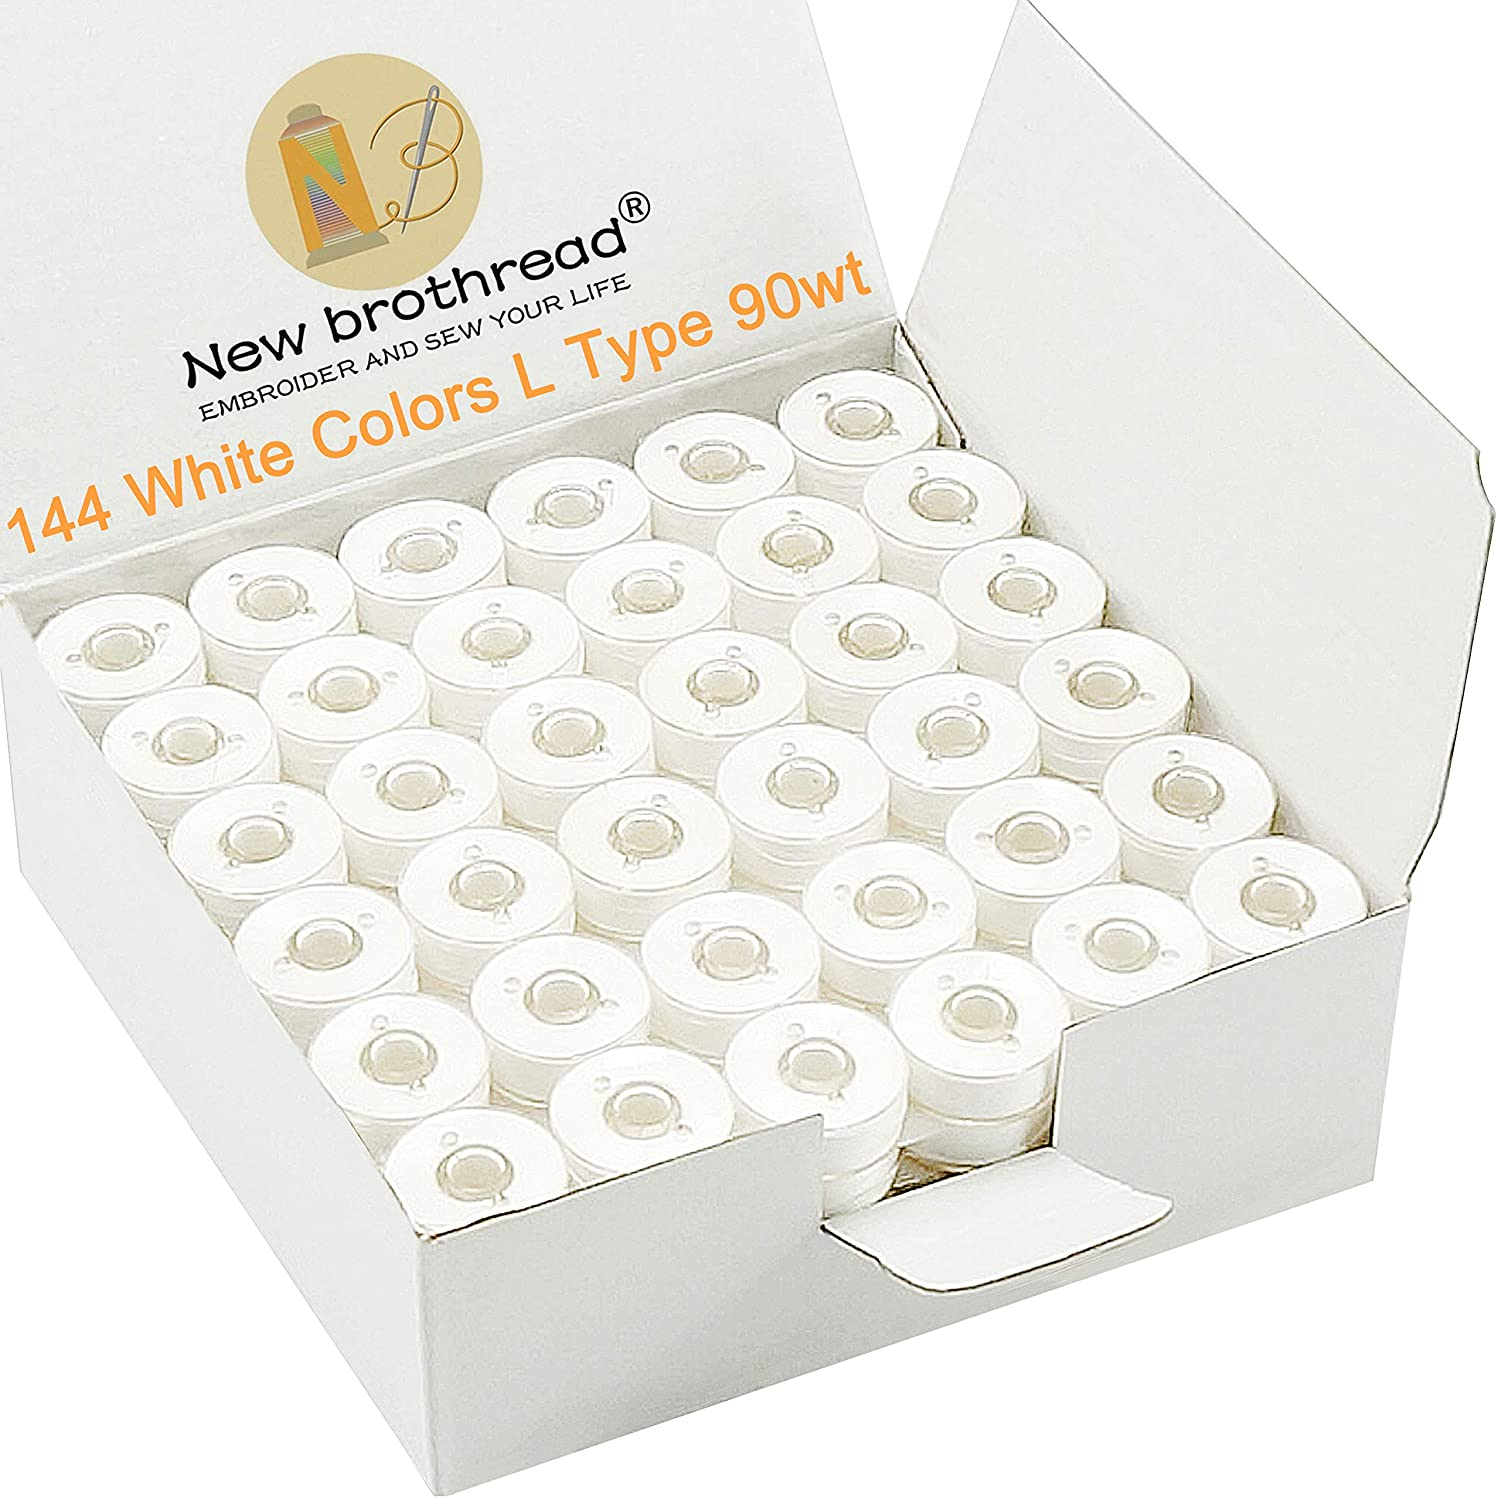 New brothread Prewound Bobbin Thread Plastic Size L for Embroidery and Sewing Machines